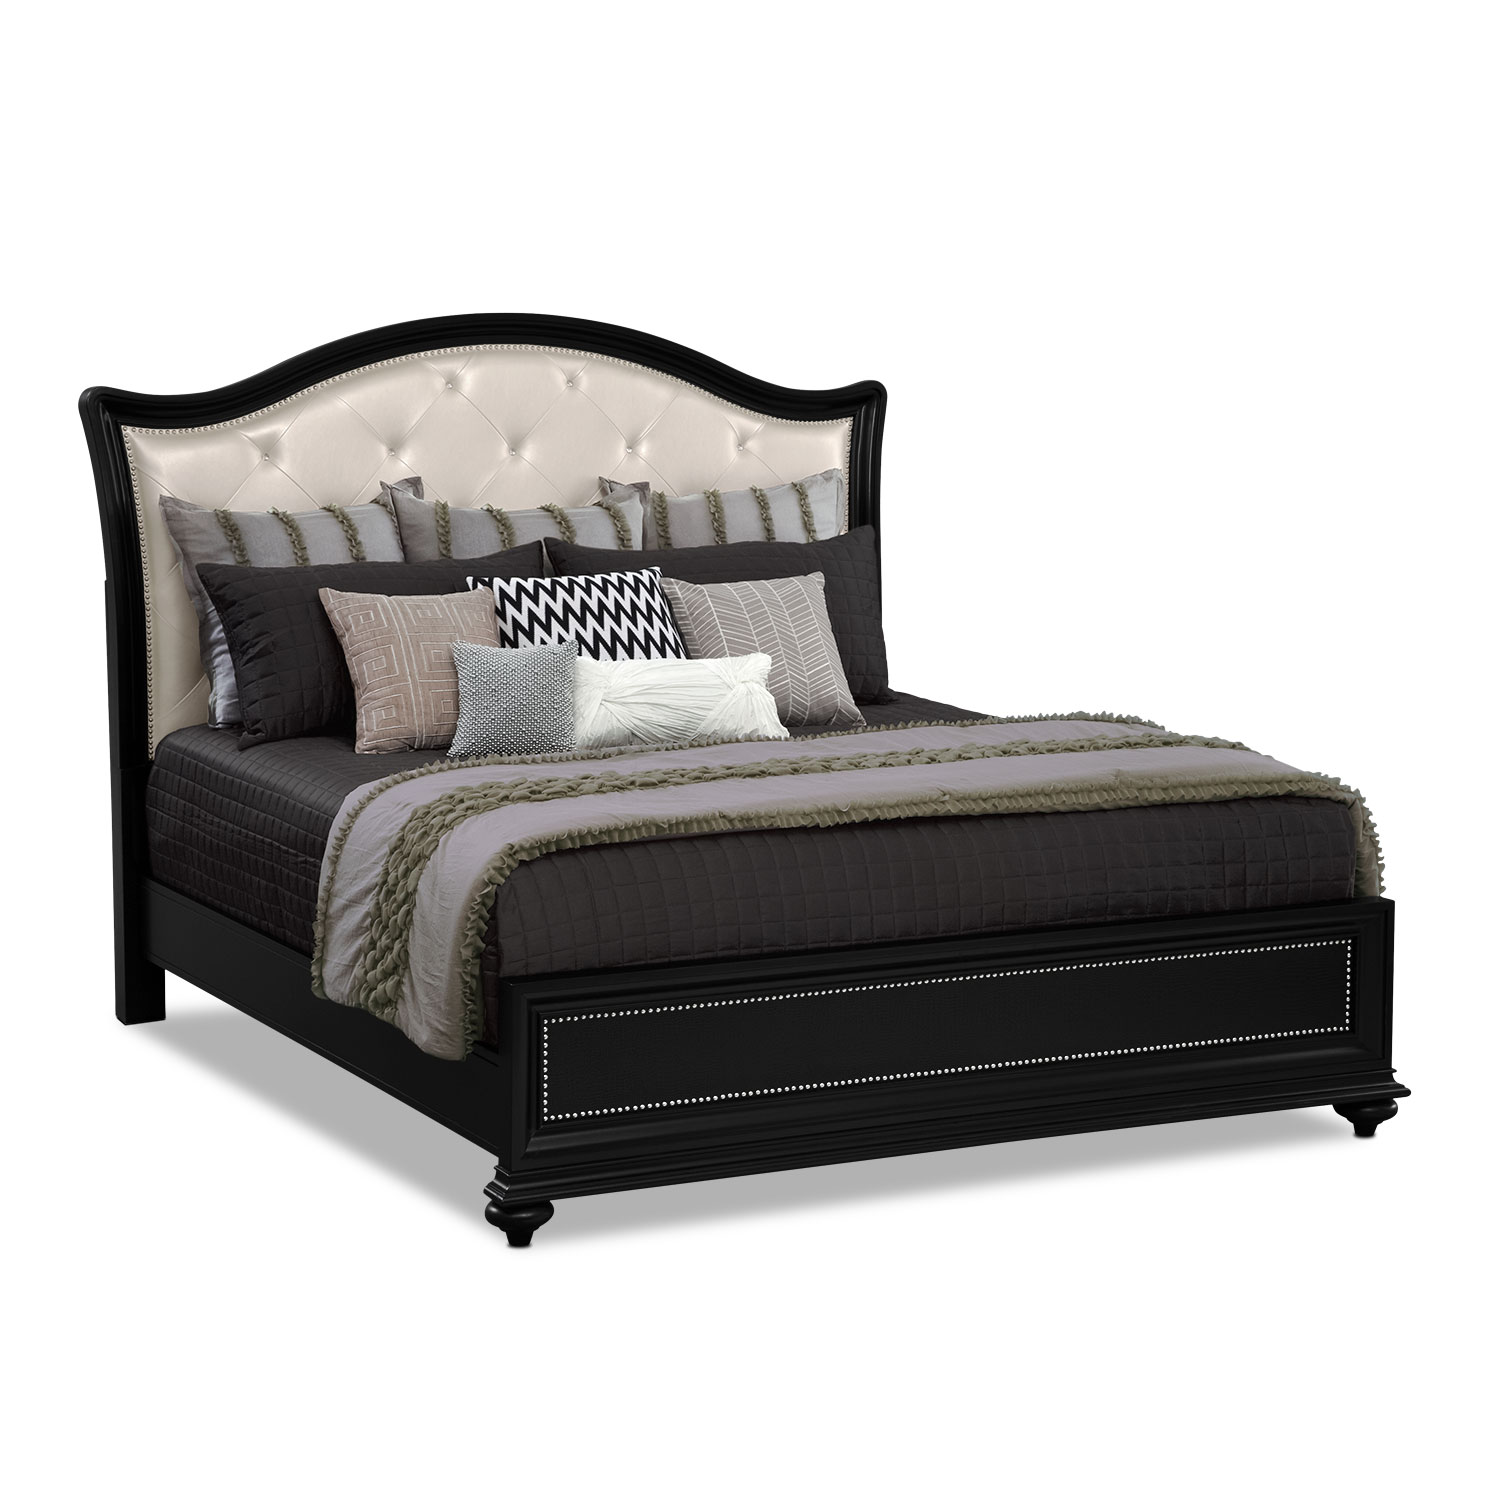 Marilyn 6 Piece King Bedroom Set   Ebony by Pulaski. Marilyn 6 Piece King Bedroom Set   Ebony   Value City Furniture